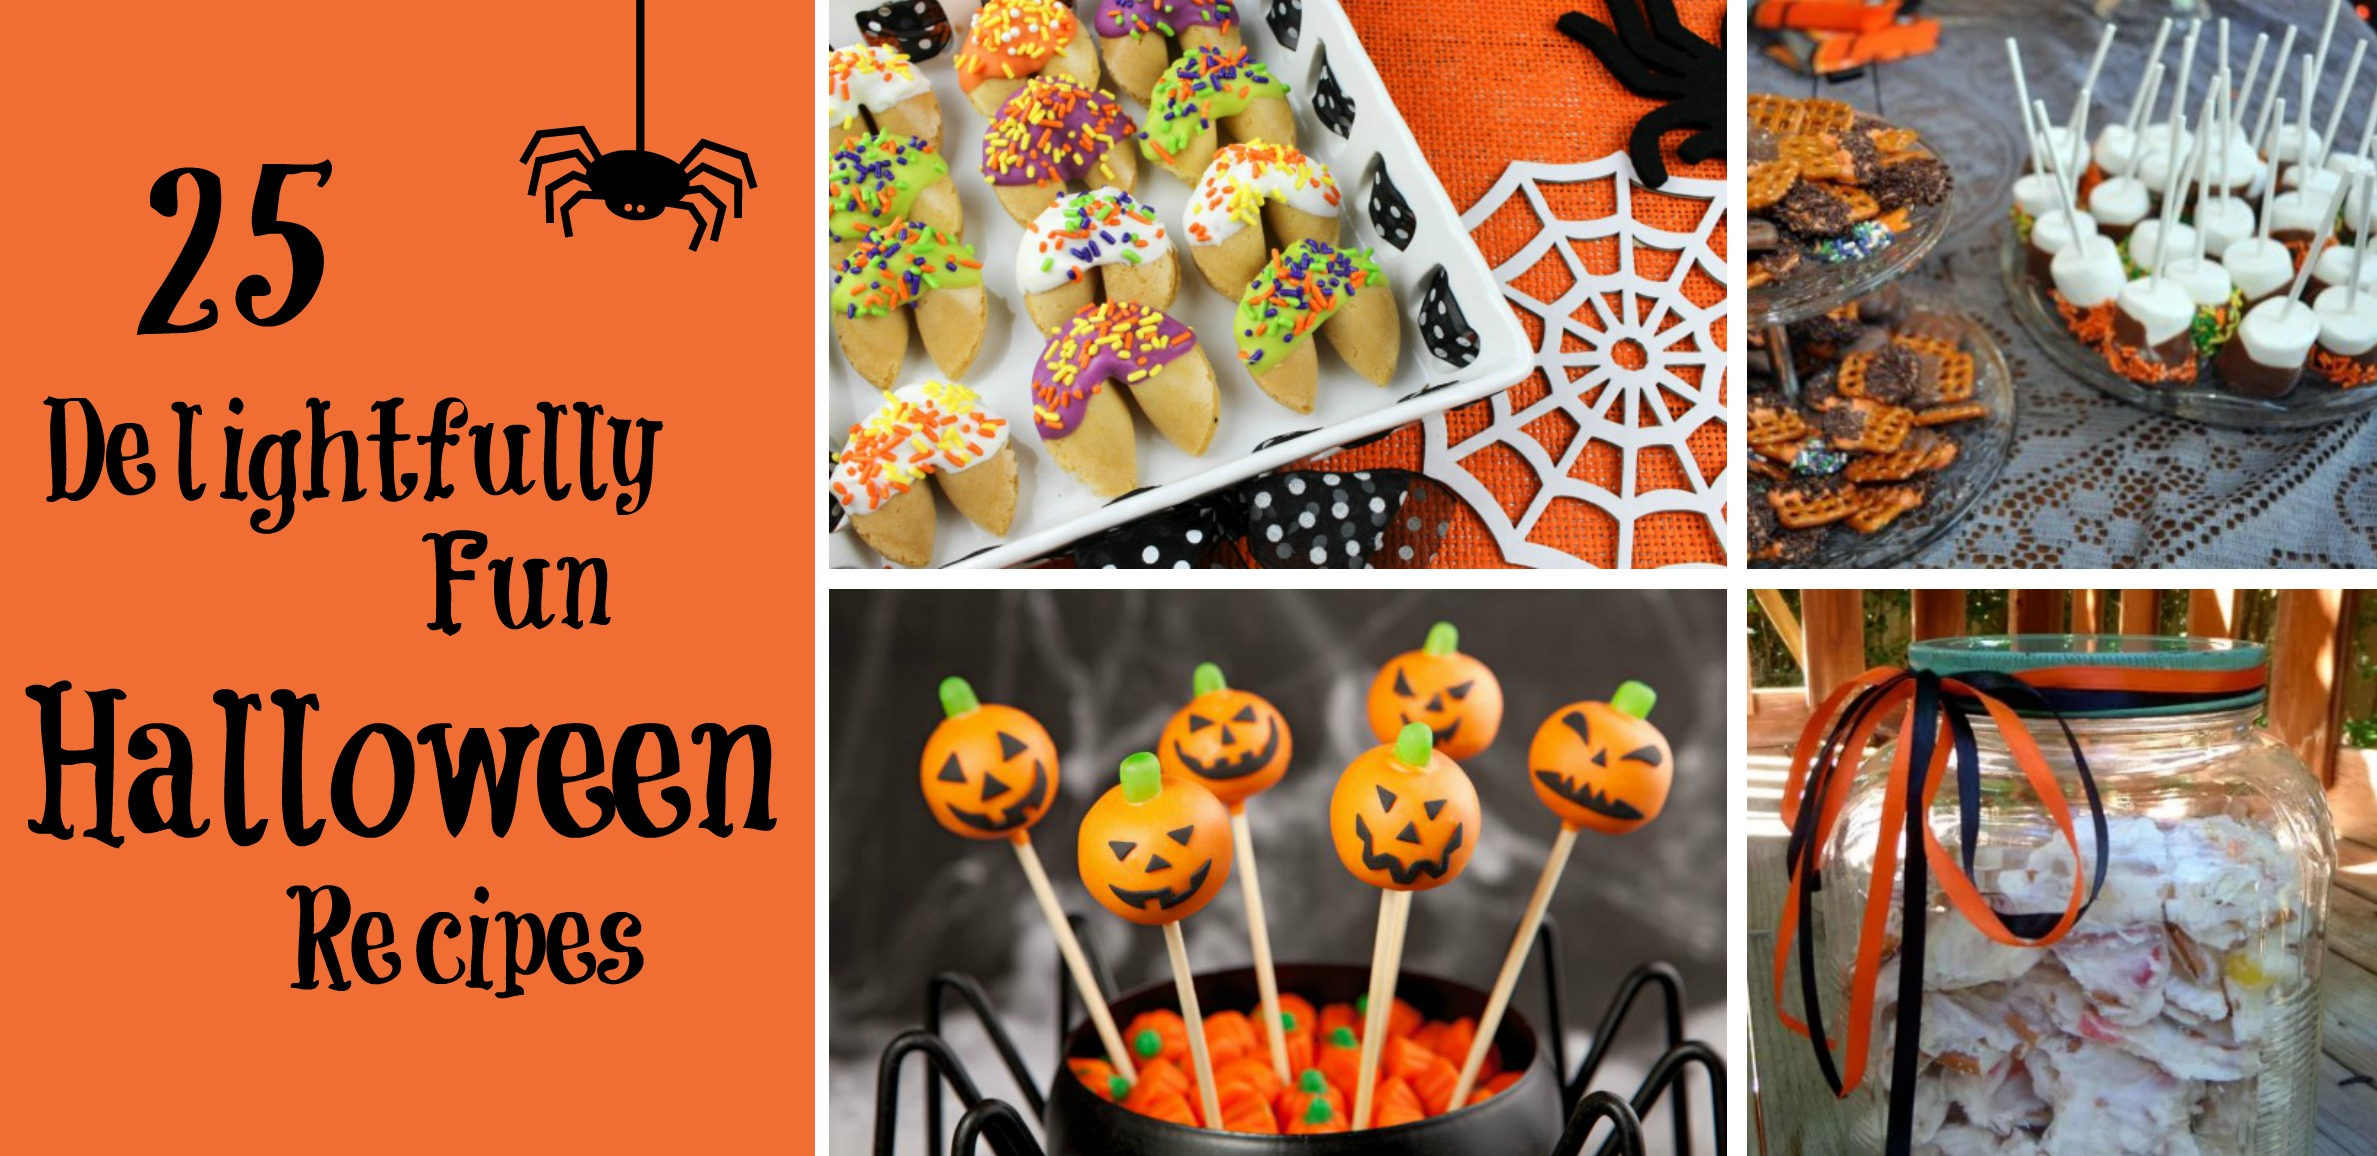 25 Delightfully Fun Halloween Recipes